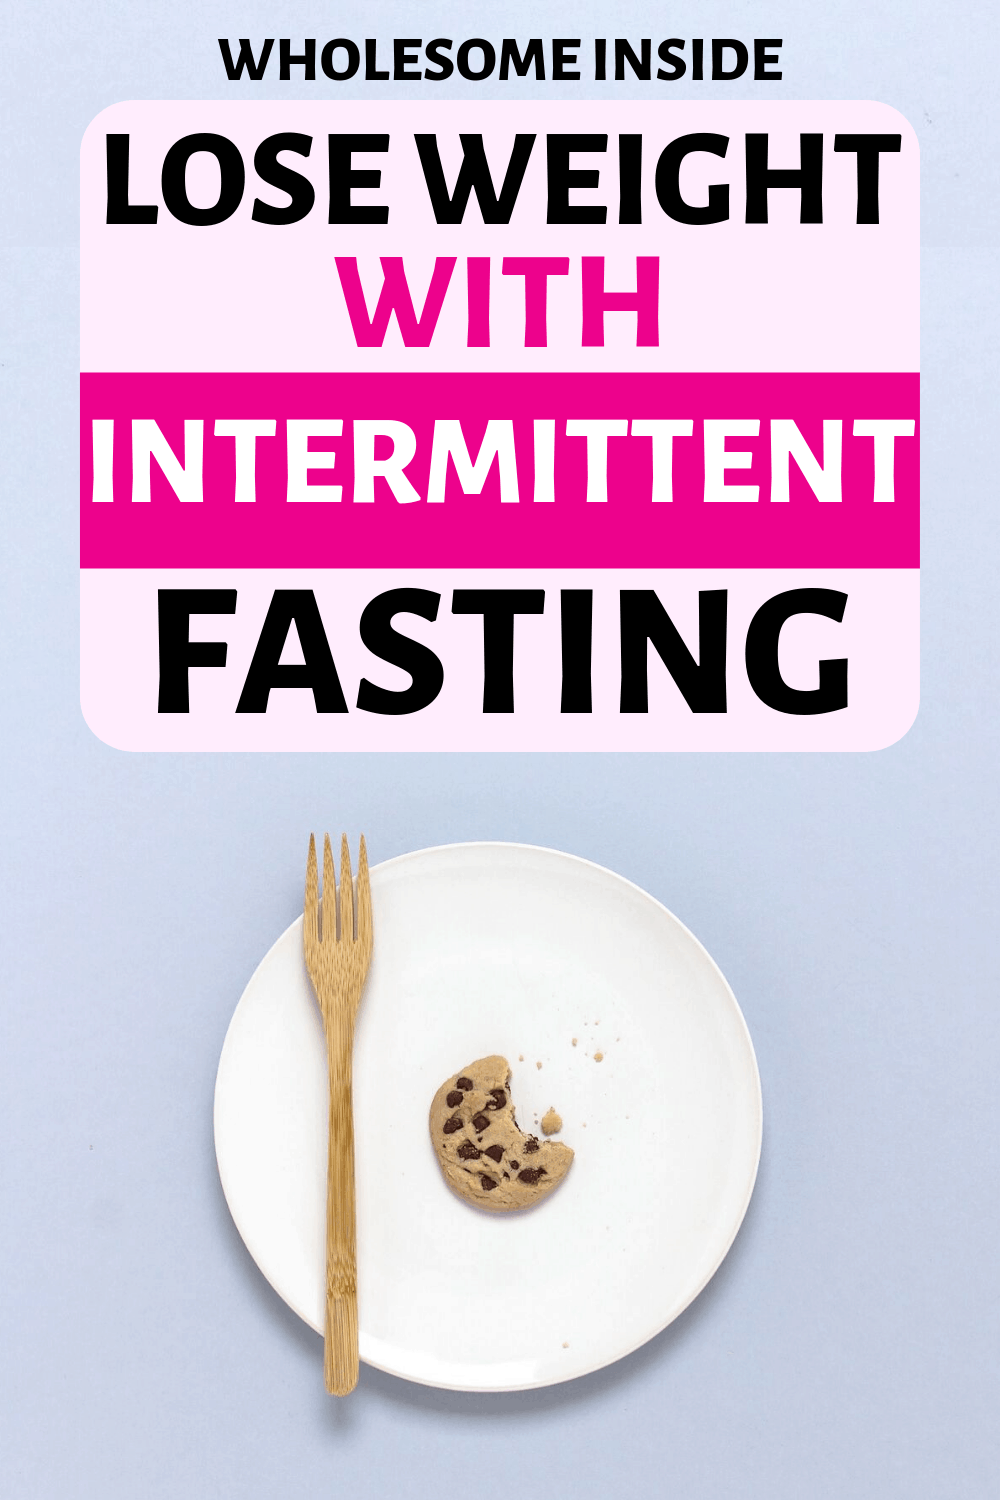 Lose Weight with intermittent fasting. IF is an incredible diet to lose weight quickly for women.